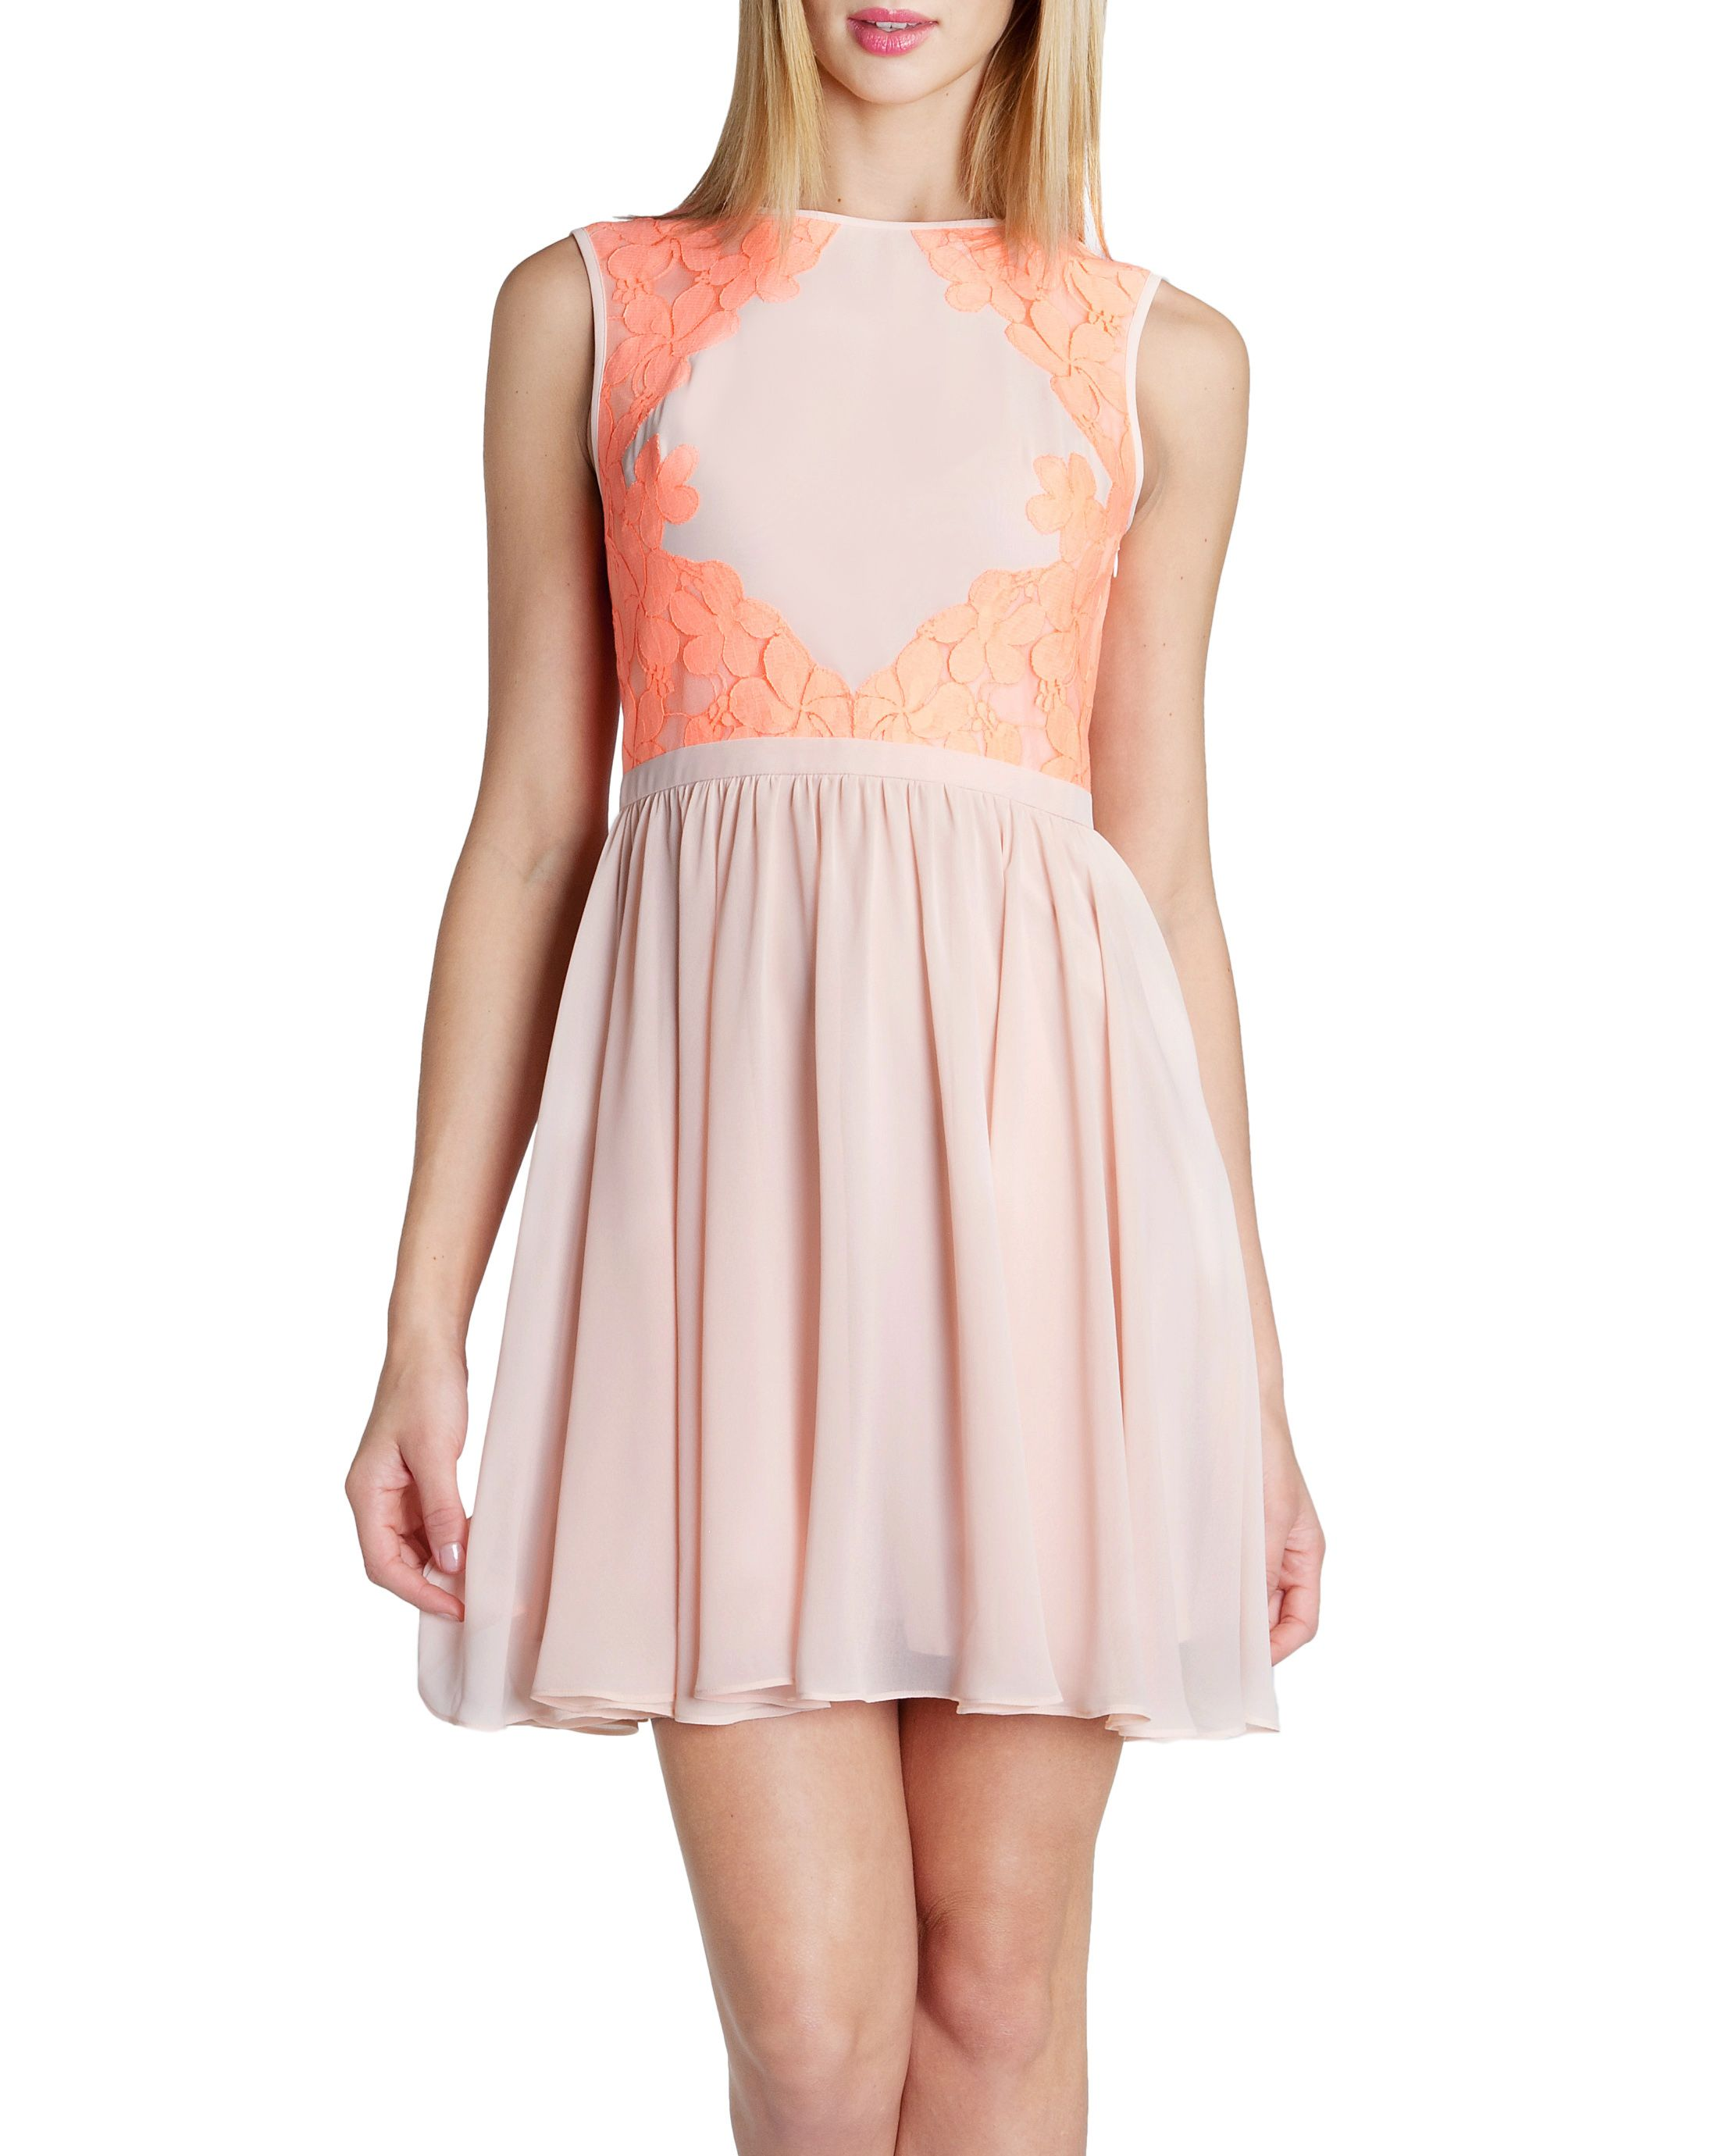 Vember lace colour block dress